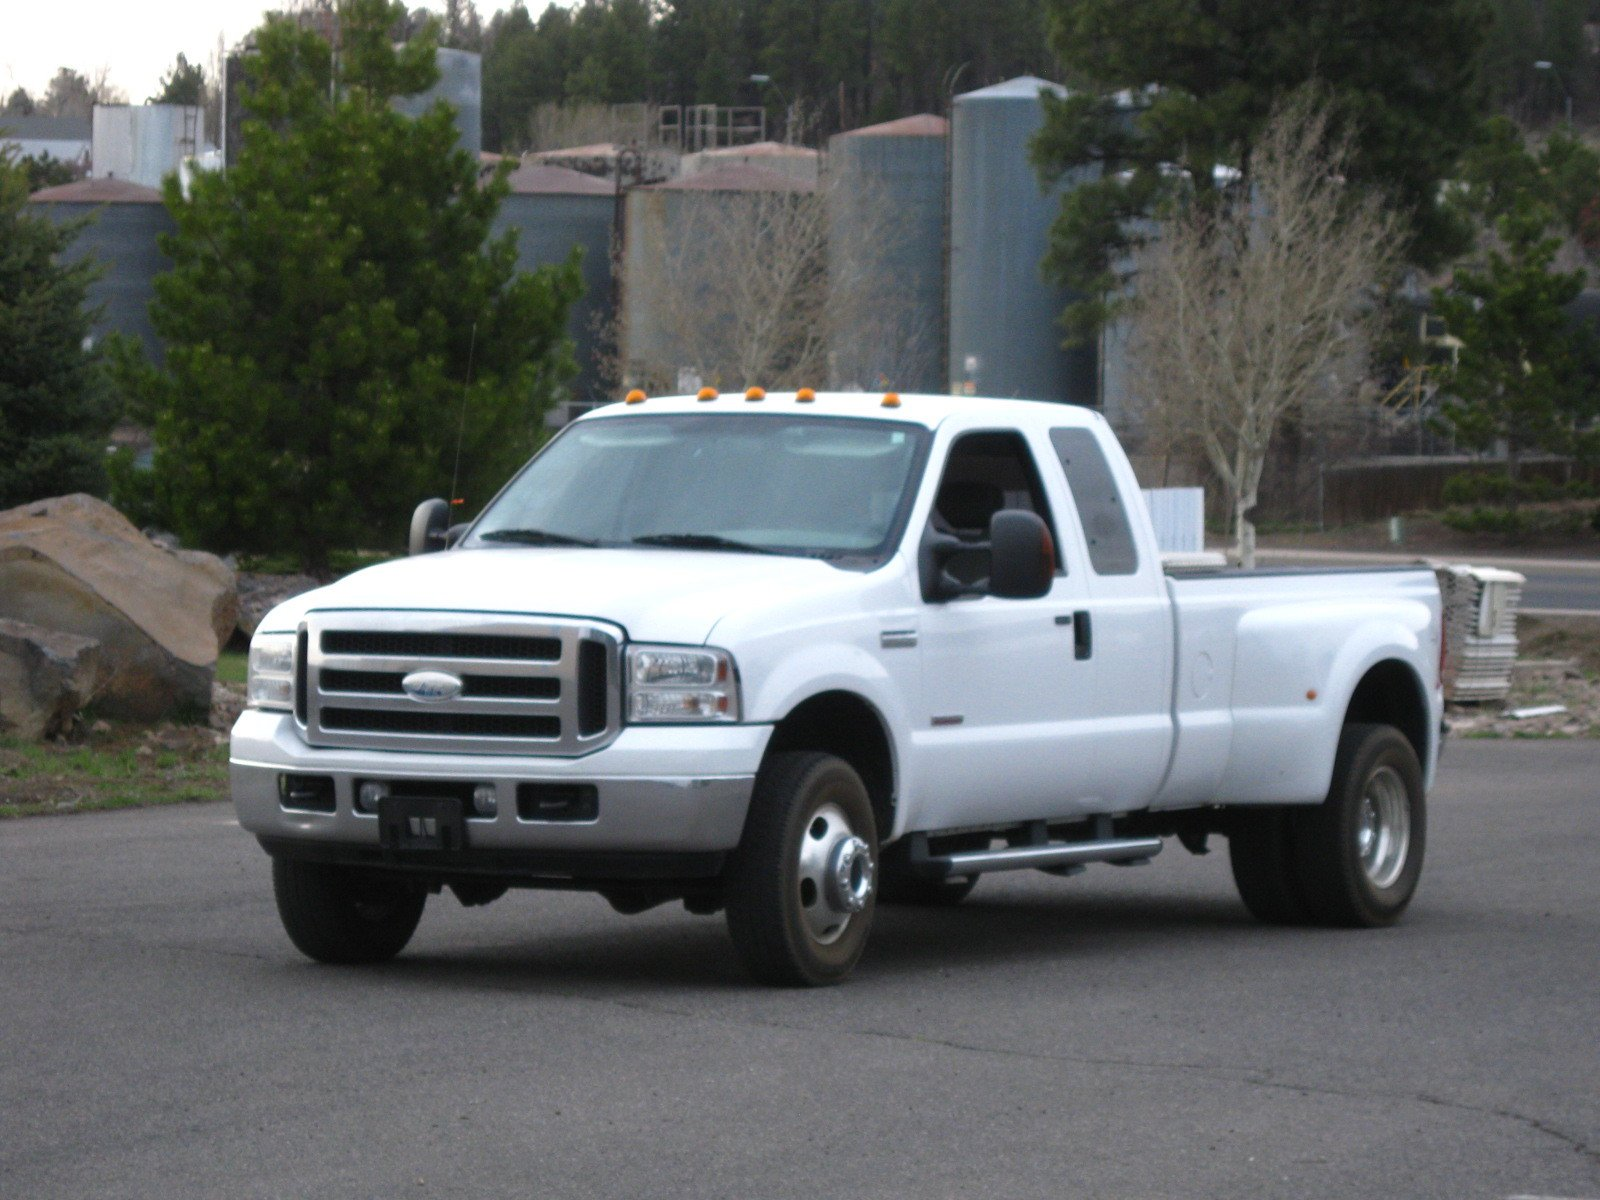 2005 Ford F-350 TURBO DIESEL 4x4 DUALLY EXTENDED CAB